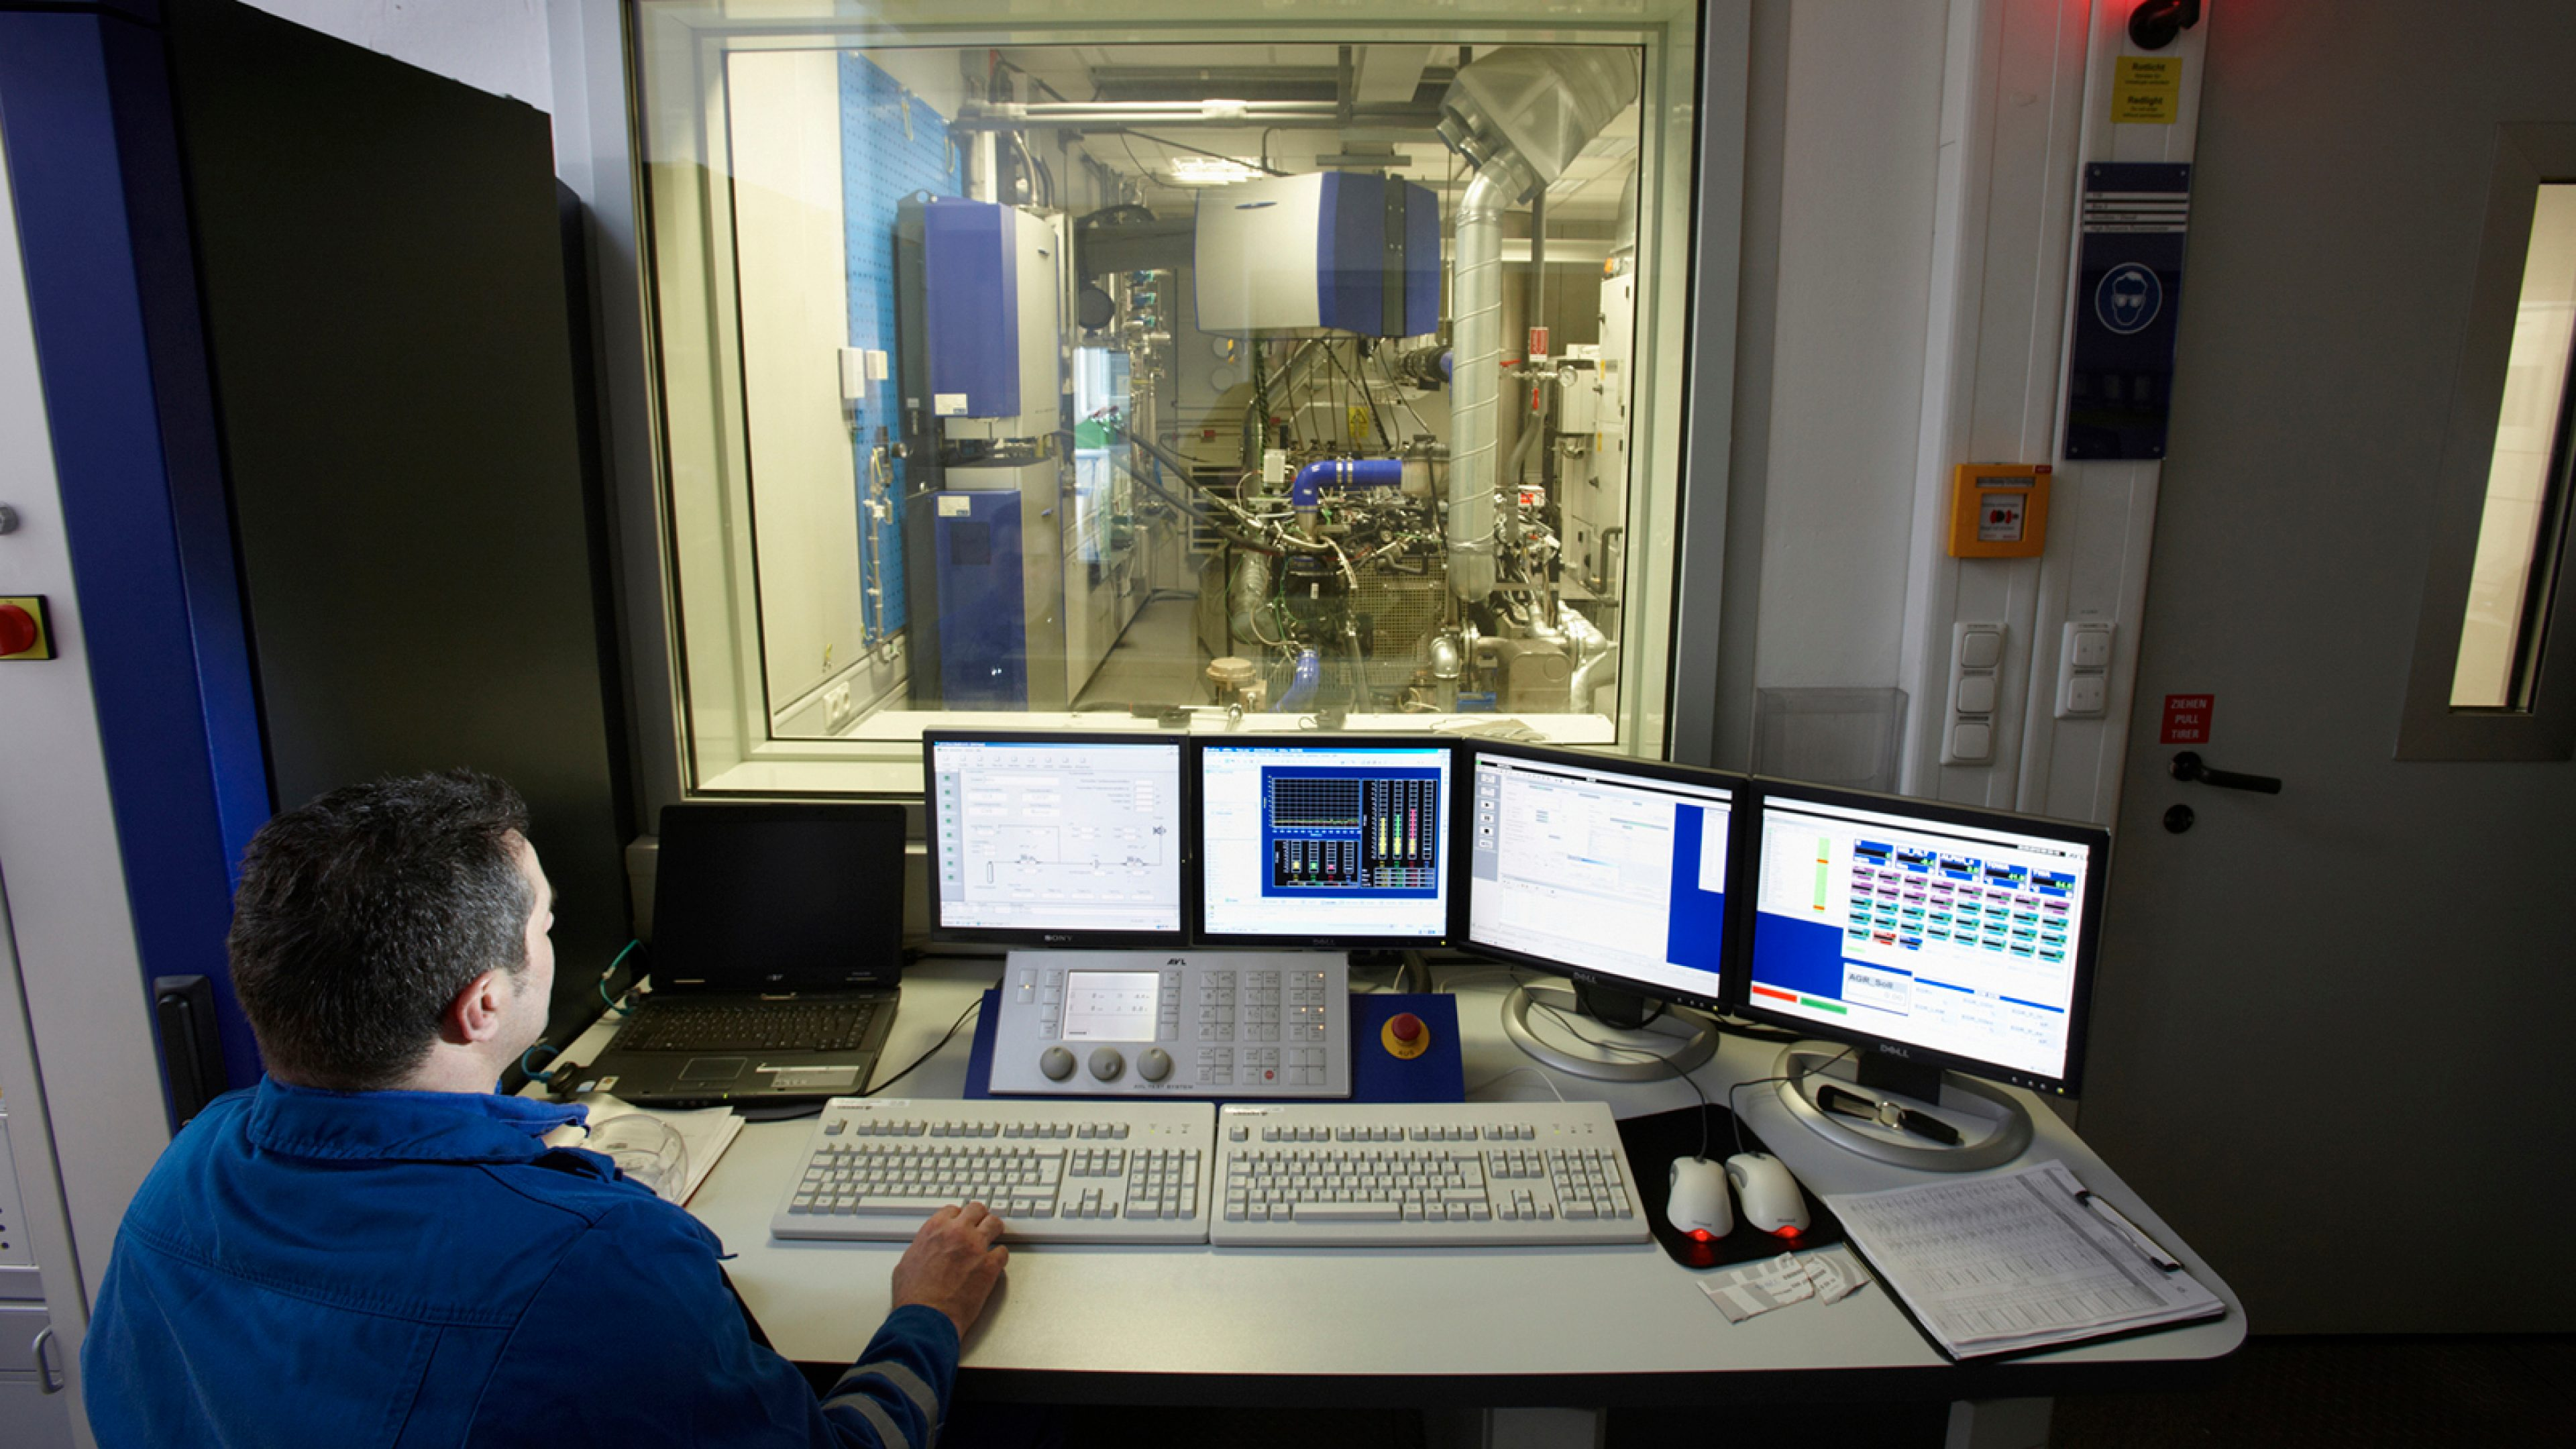 Technician performing computerized analysis